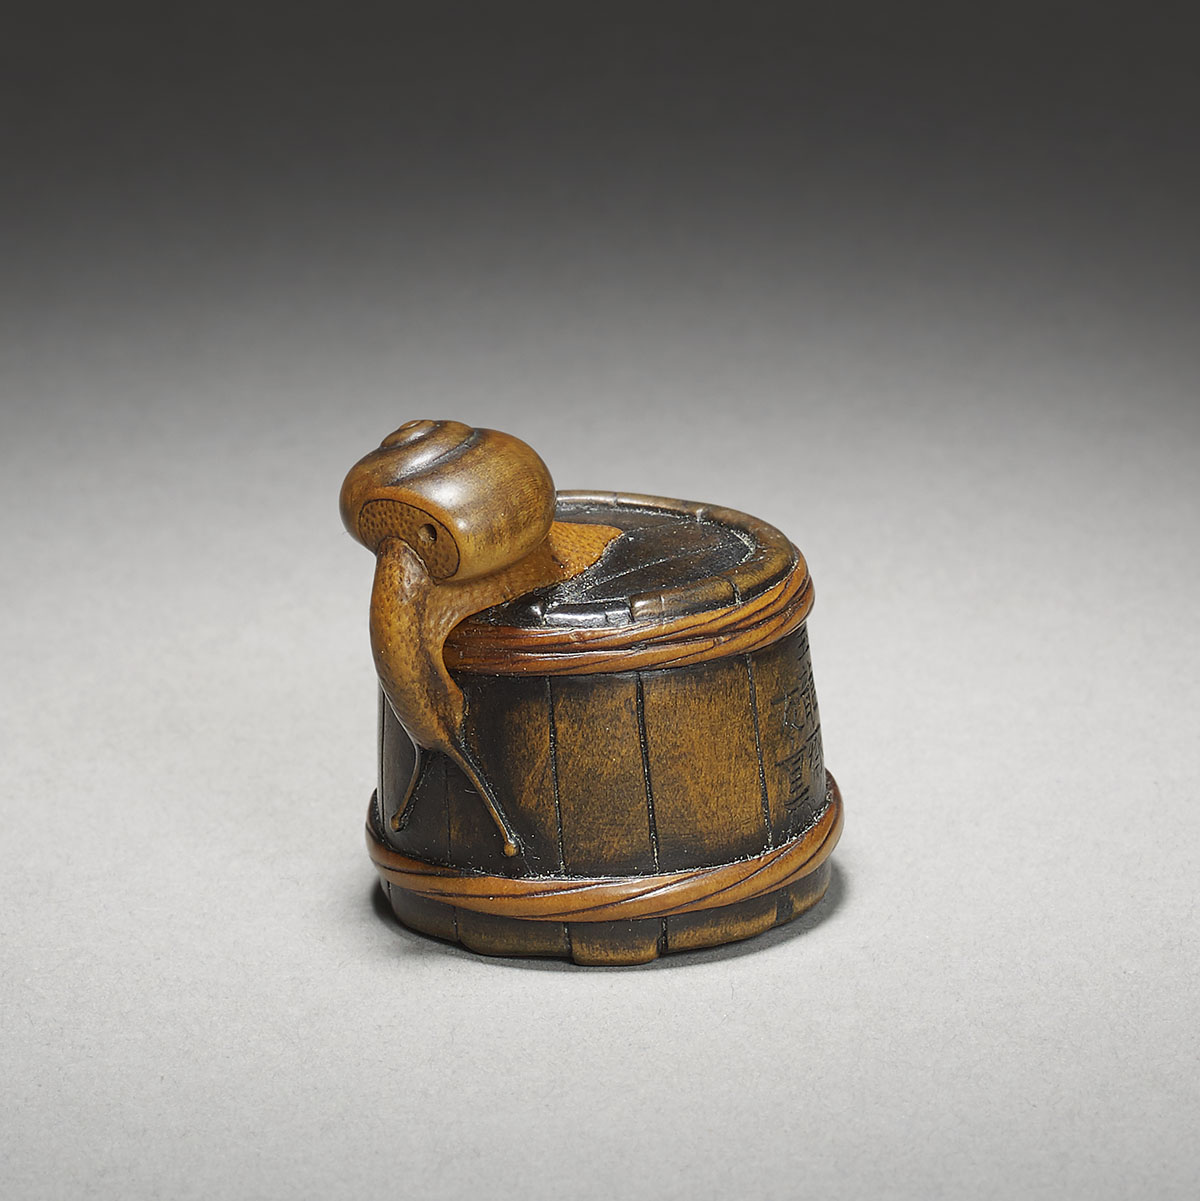 Gyokuryusai Tomoshige, wood netsuke of a snail on a bucket